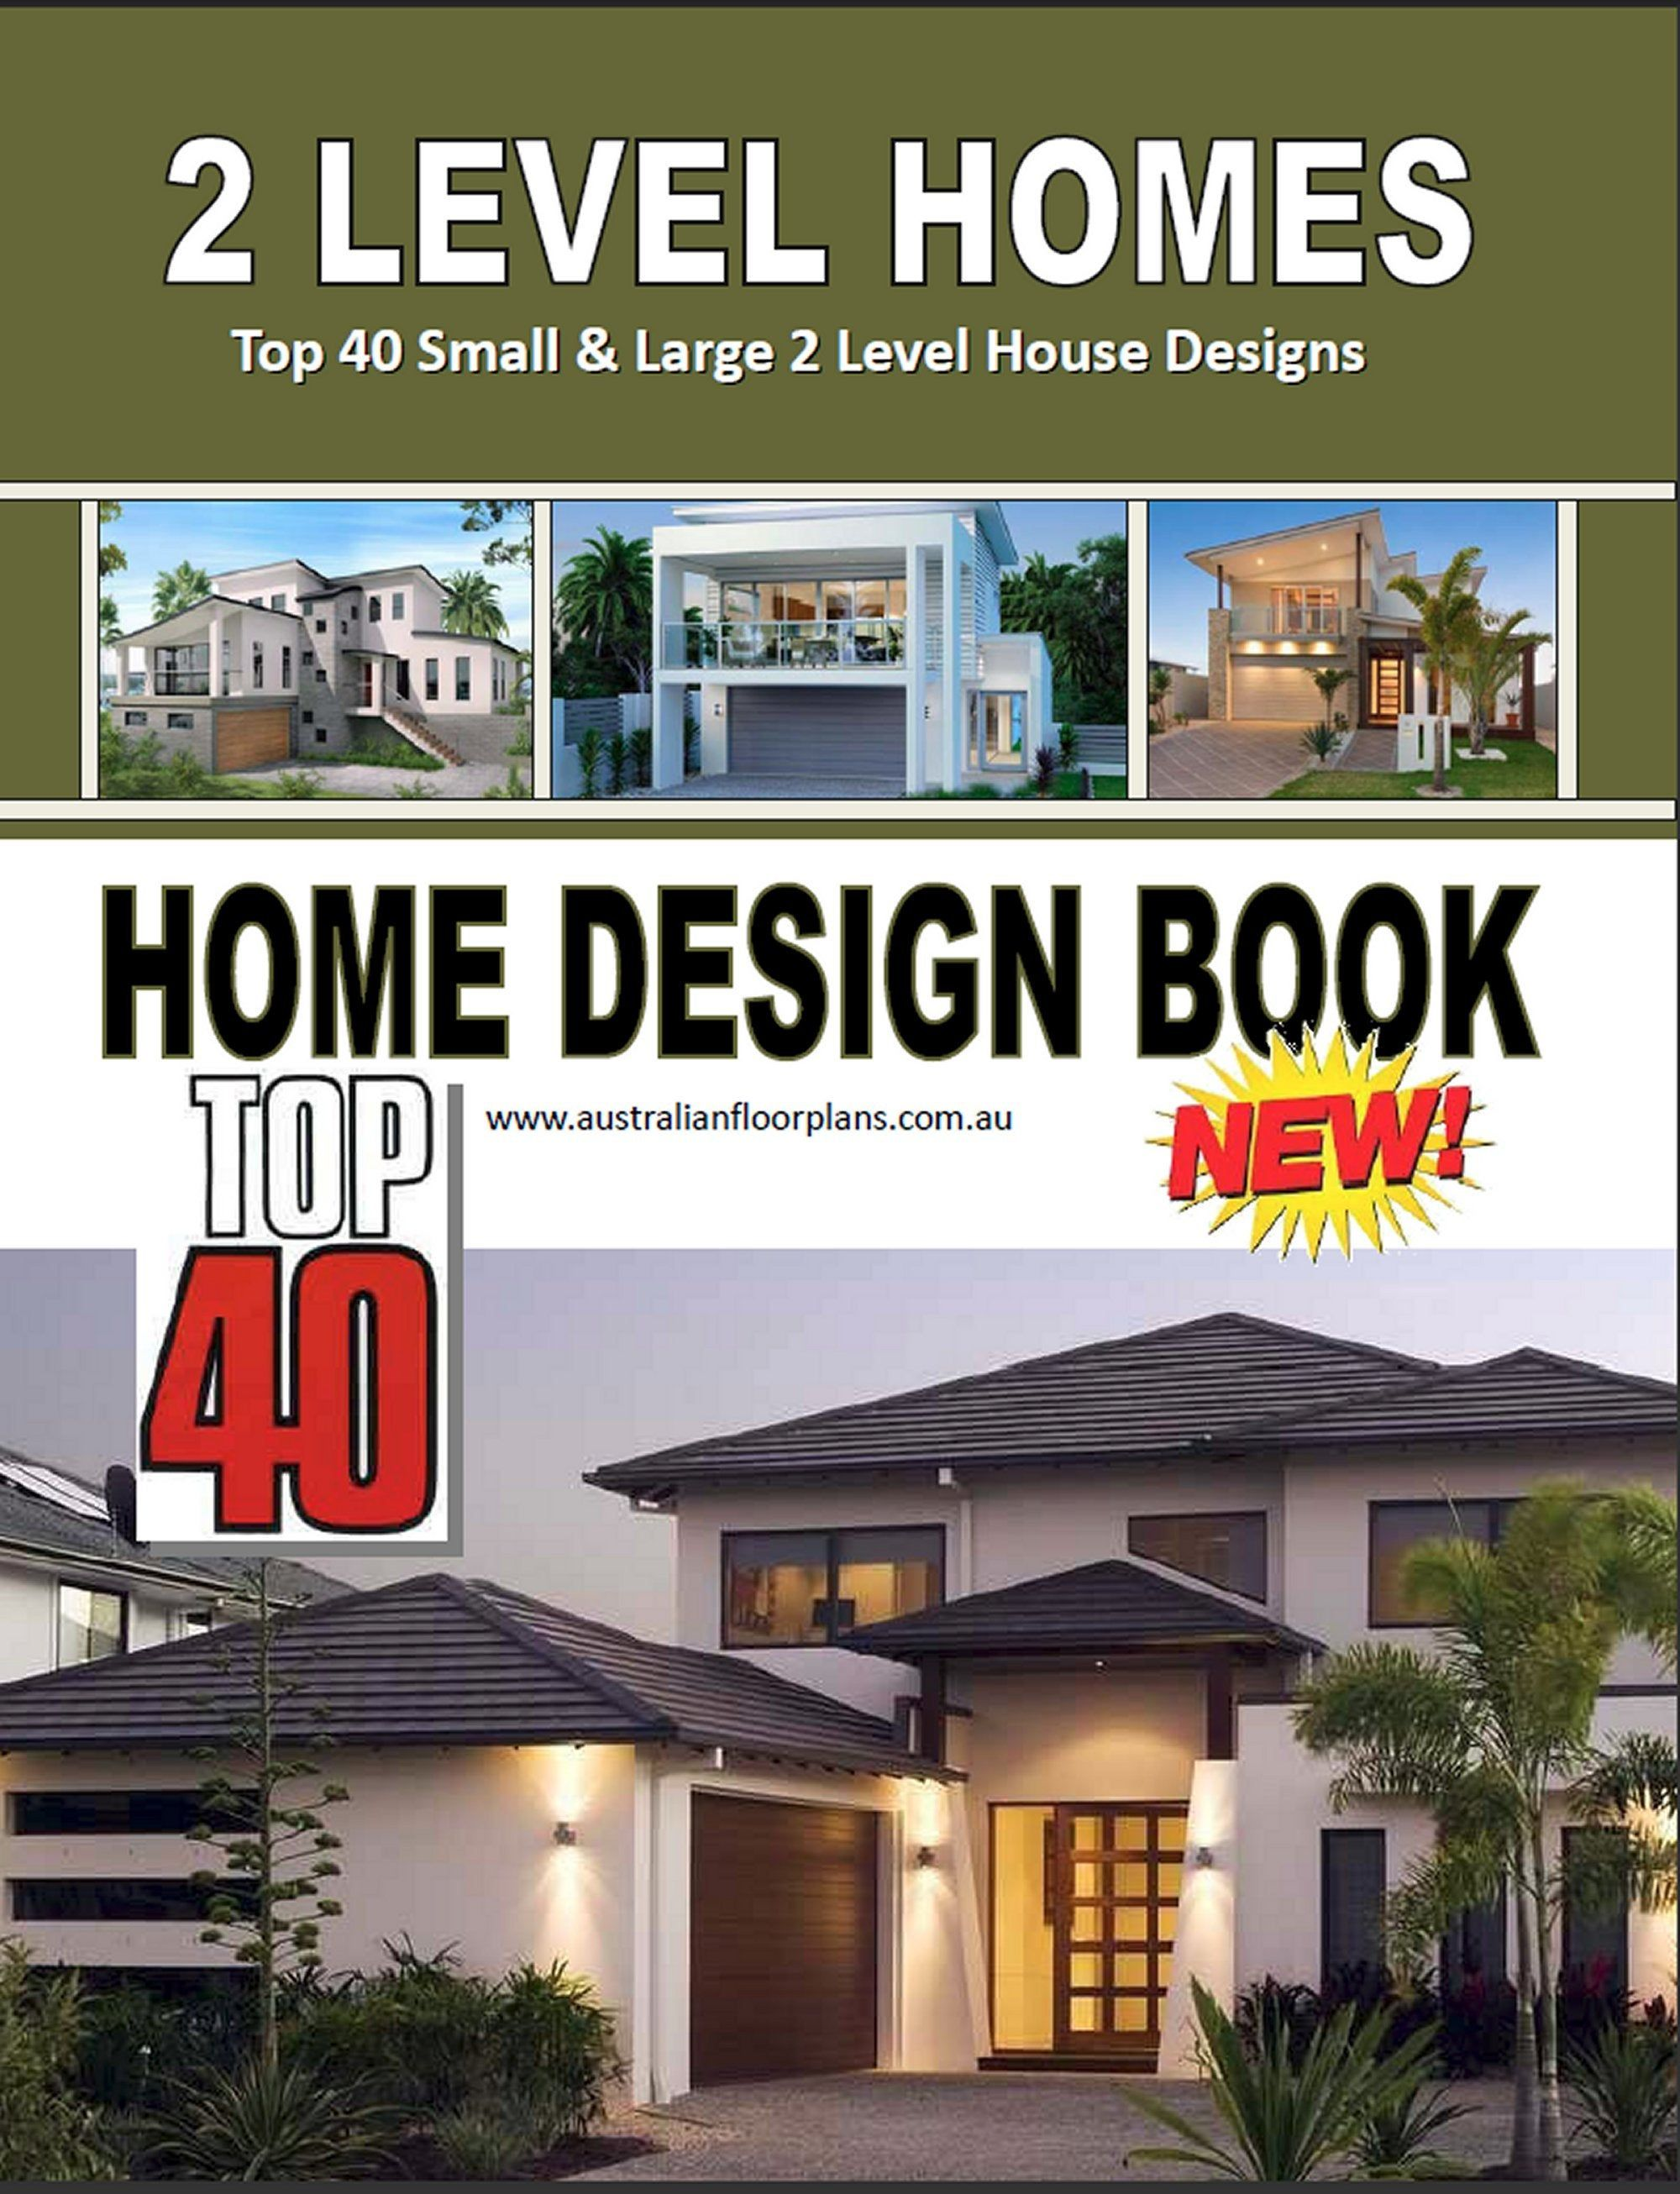 Two Storey House Plans Distinctive Homes Double Storey House Etsy Two Storey House Plans Double Storey House Plans Two Storey House